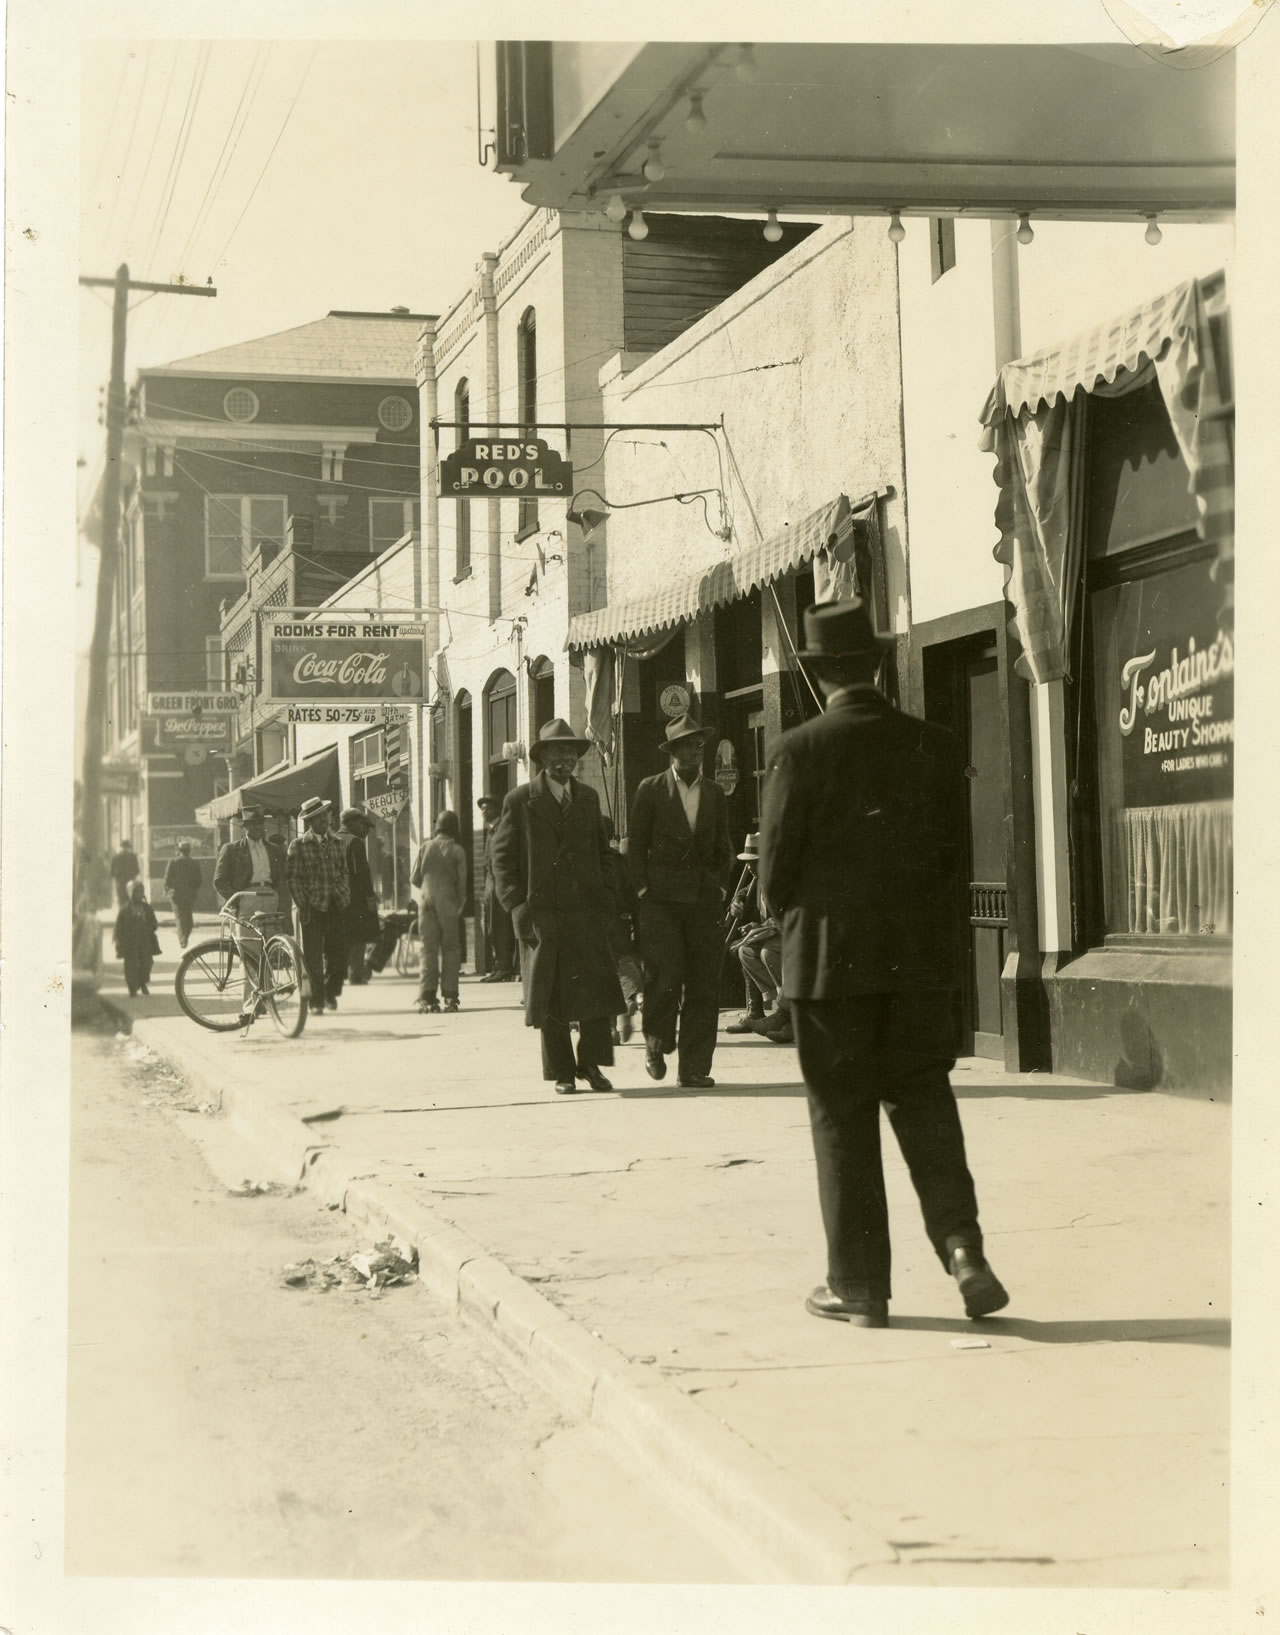 I even found some great old pictures on 9th St and the Dreamland Ballroom this week!